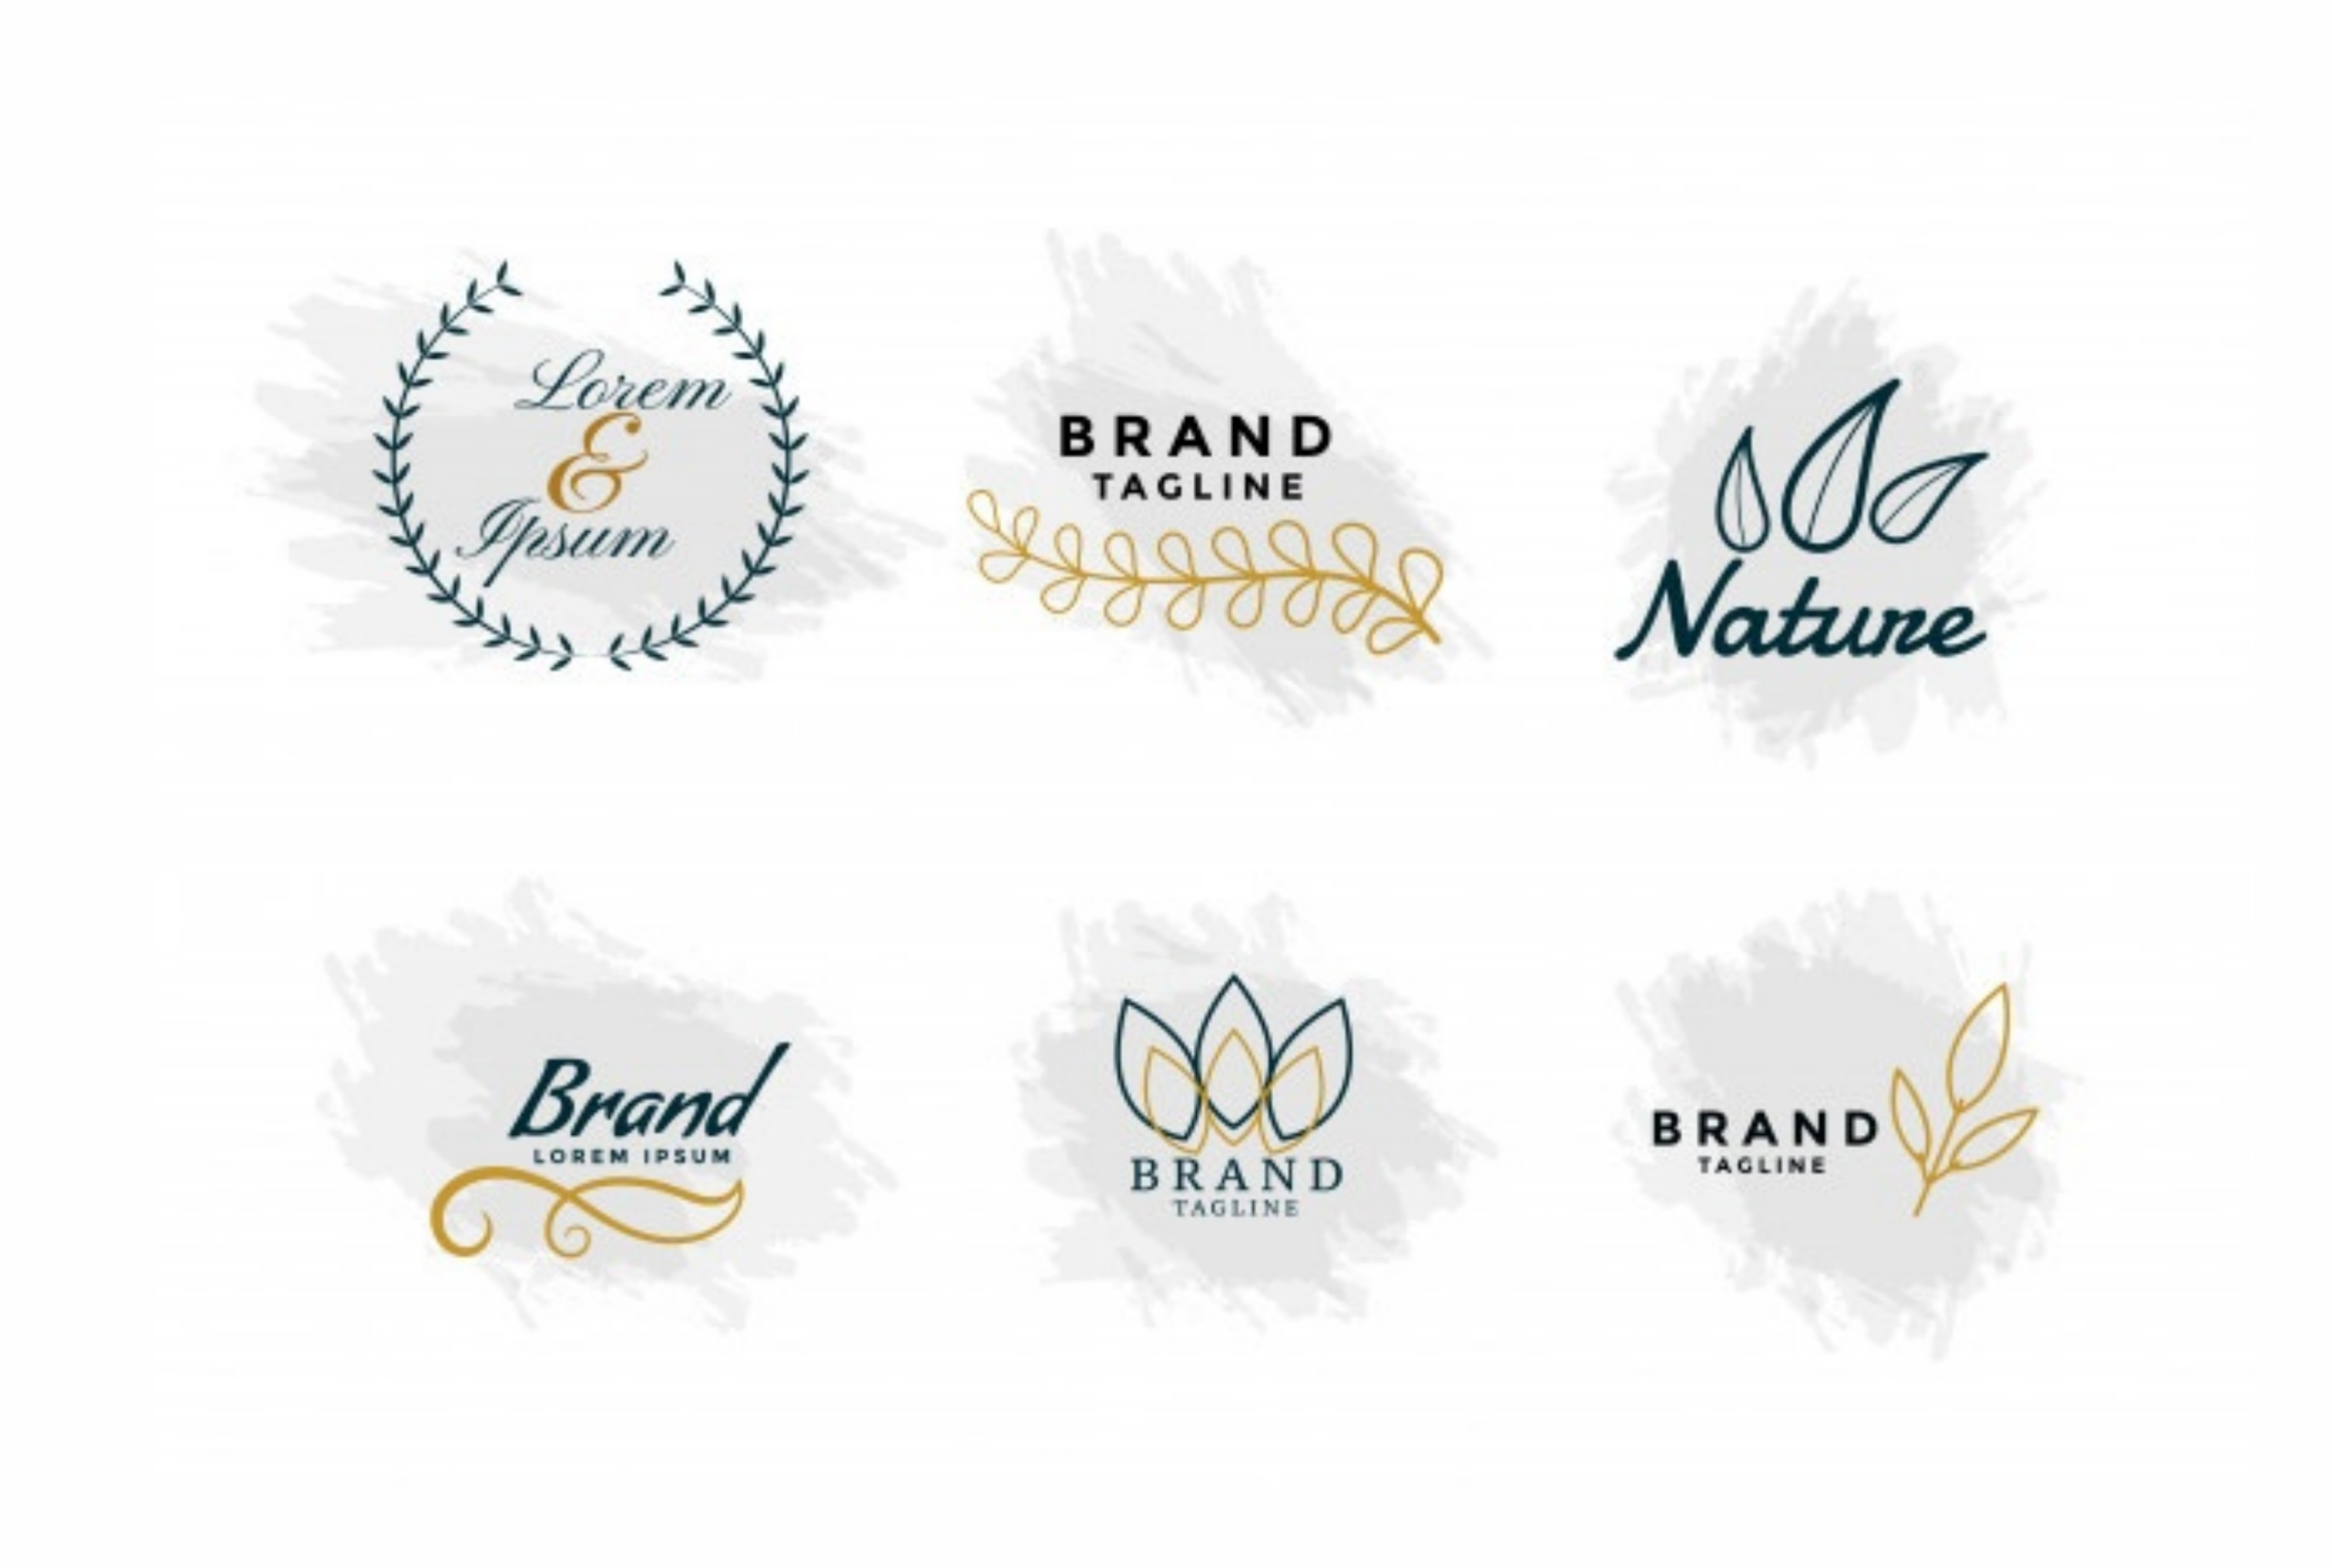 I will design minimalist logo for you.